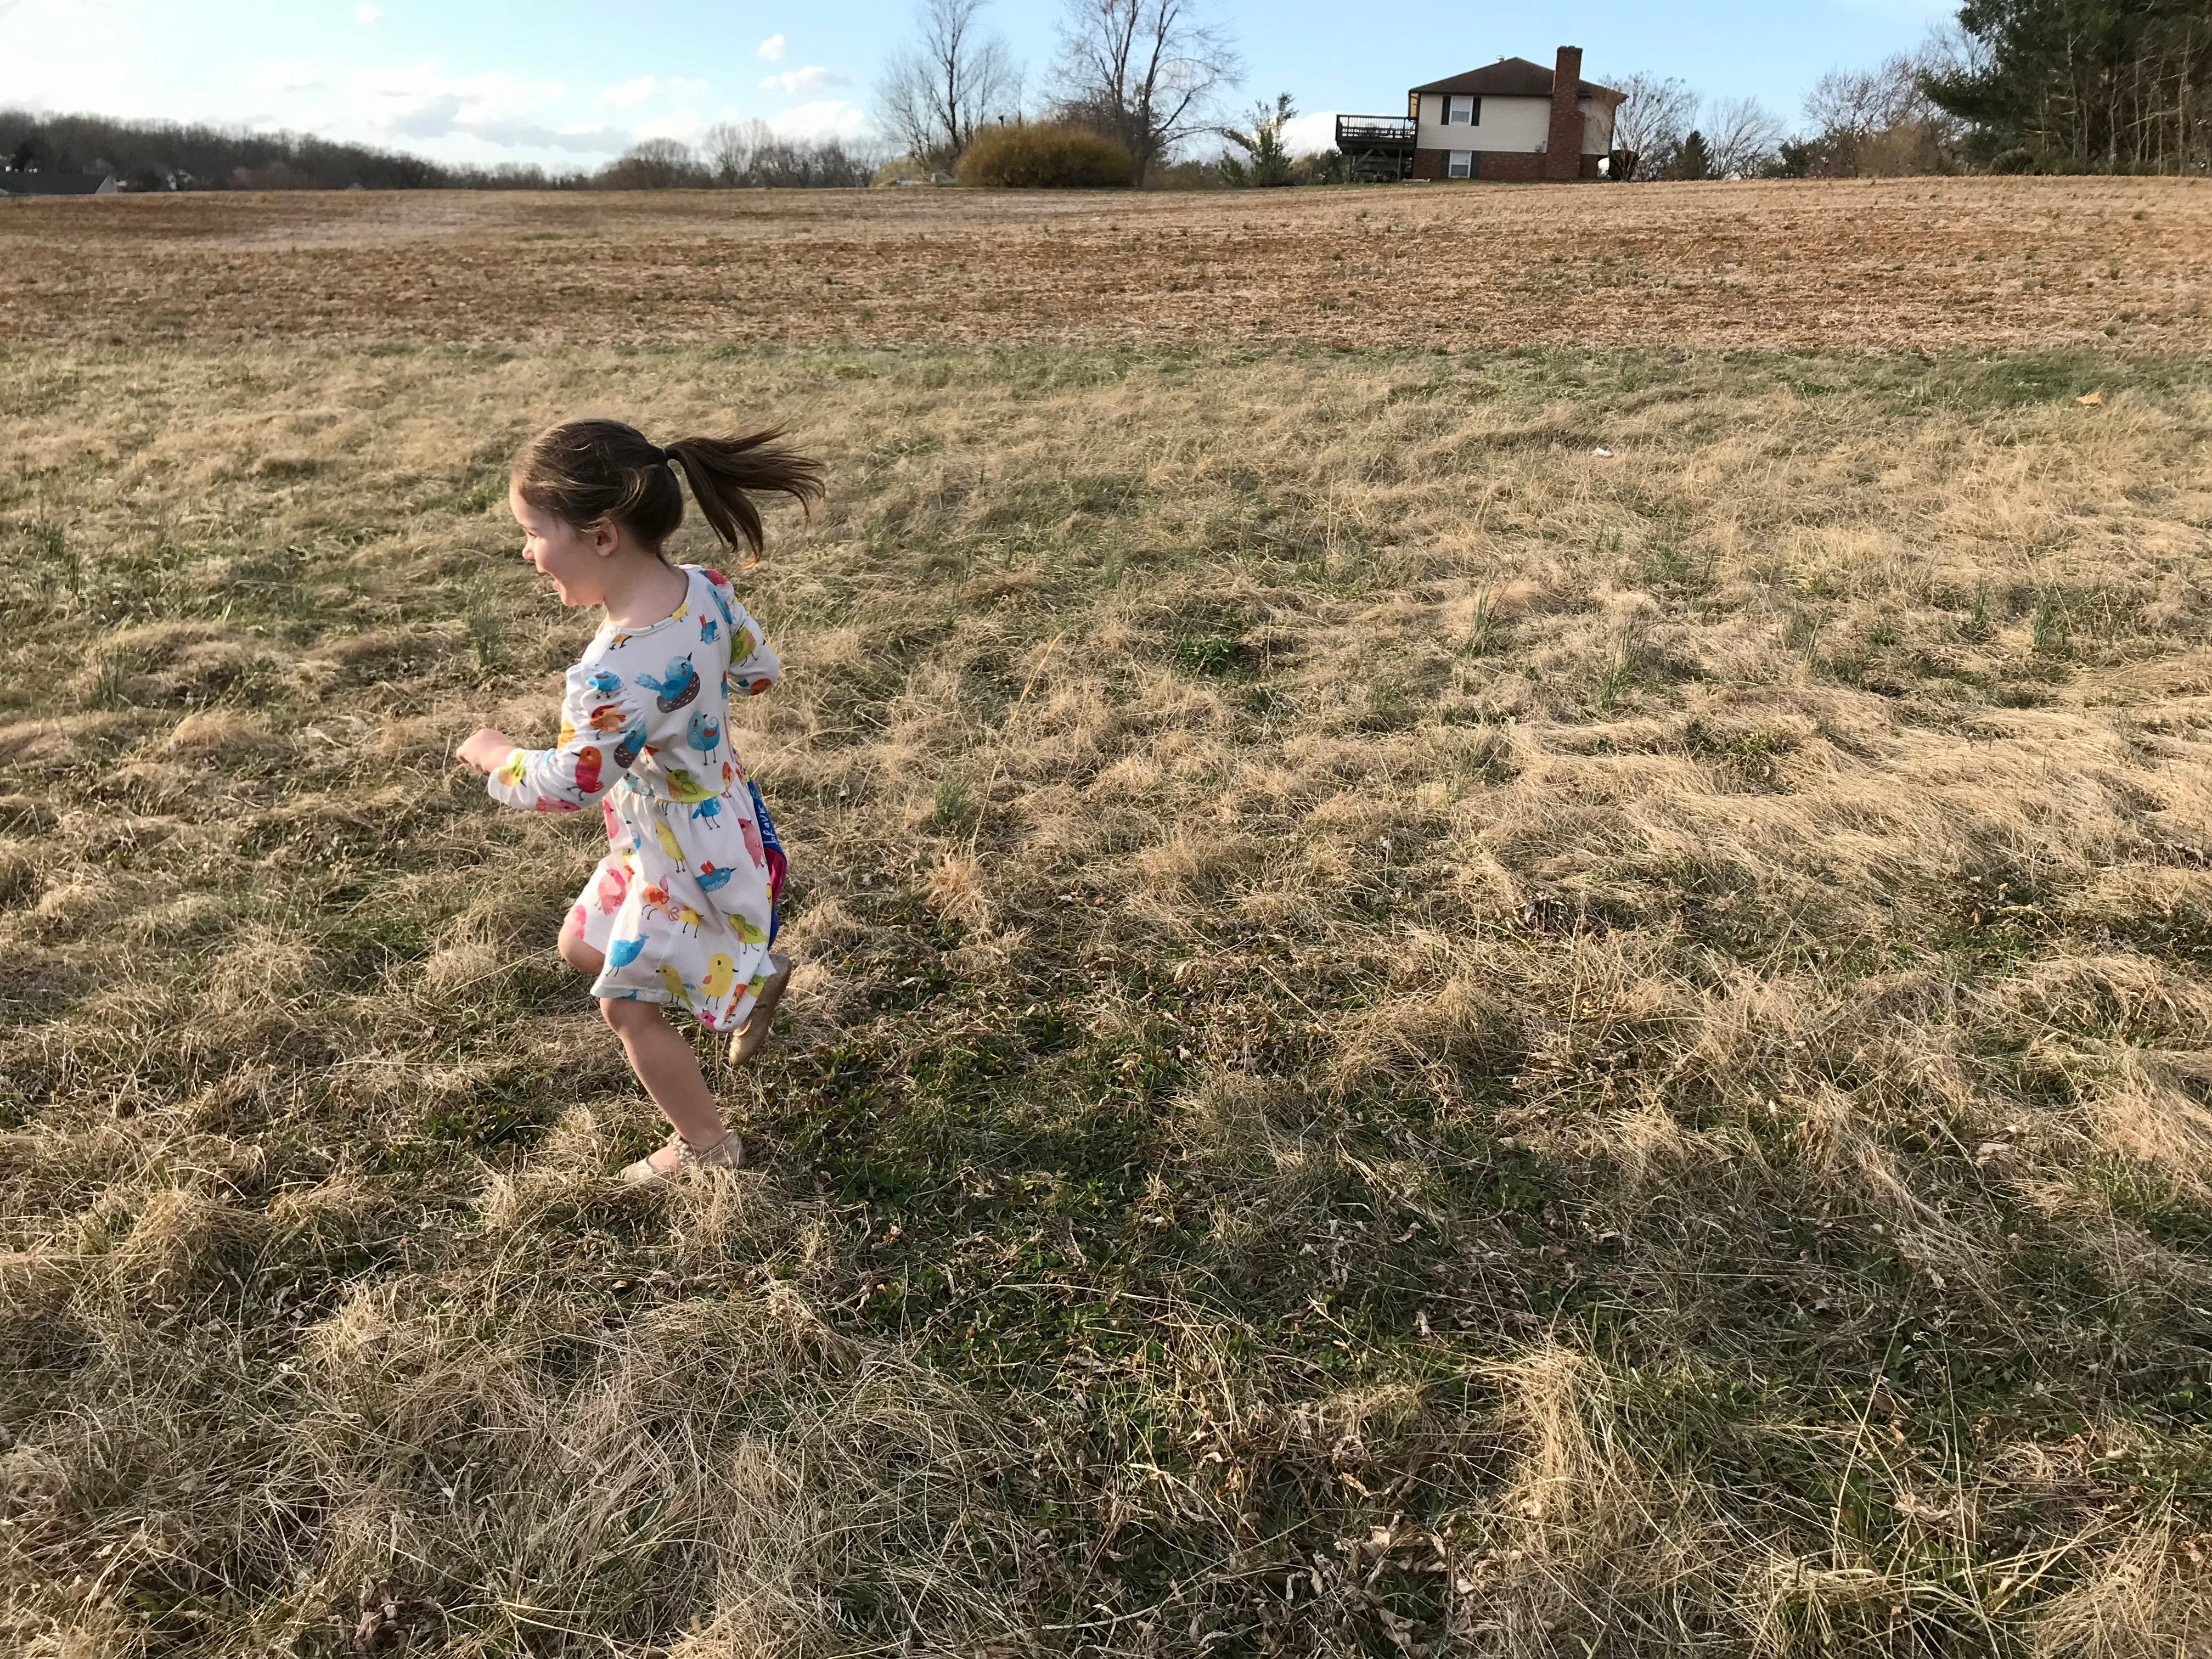 Rebecca Bussey, 3, runs through the backyard of her home in Ladd, Virginia, on Friday, March 15, 2019. Bussey has the rare disease Systemic Juvenile Idiopathic Arthritis.